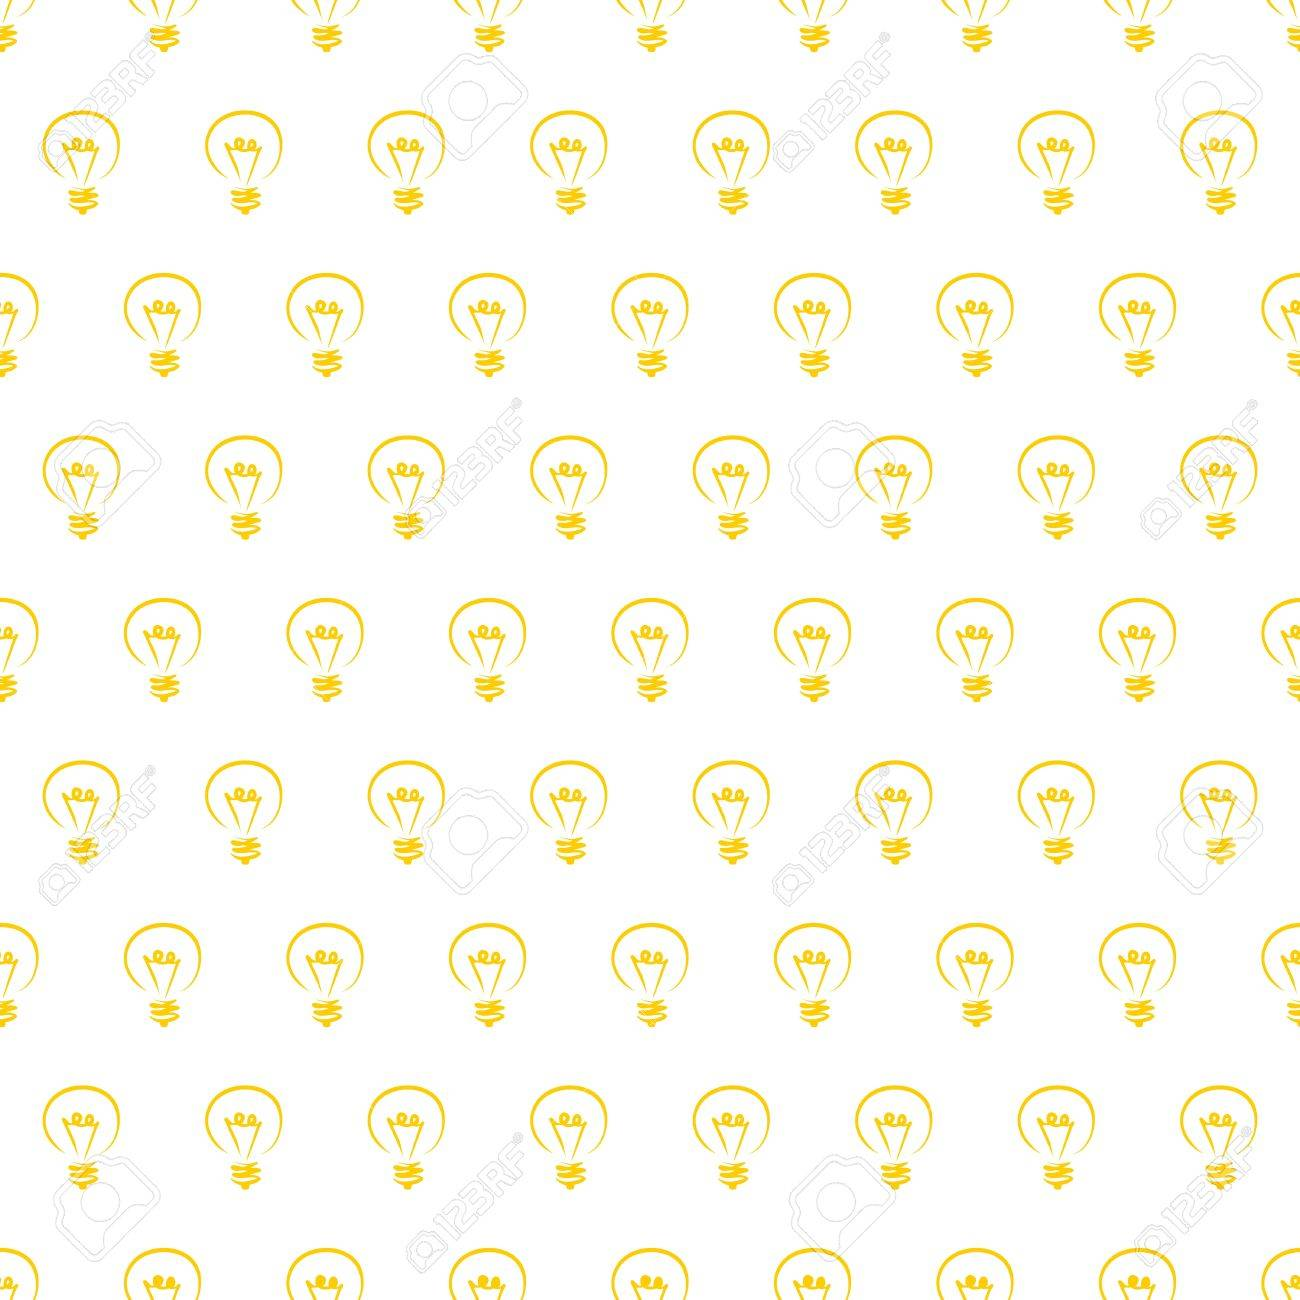 Seamless Vector Pattern Texture Or Background With Light Bulbs On White For Web